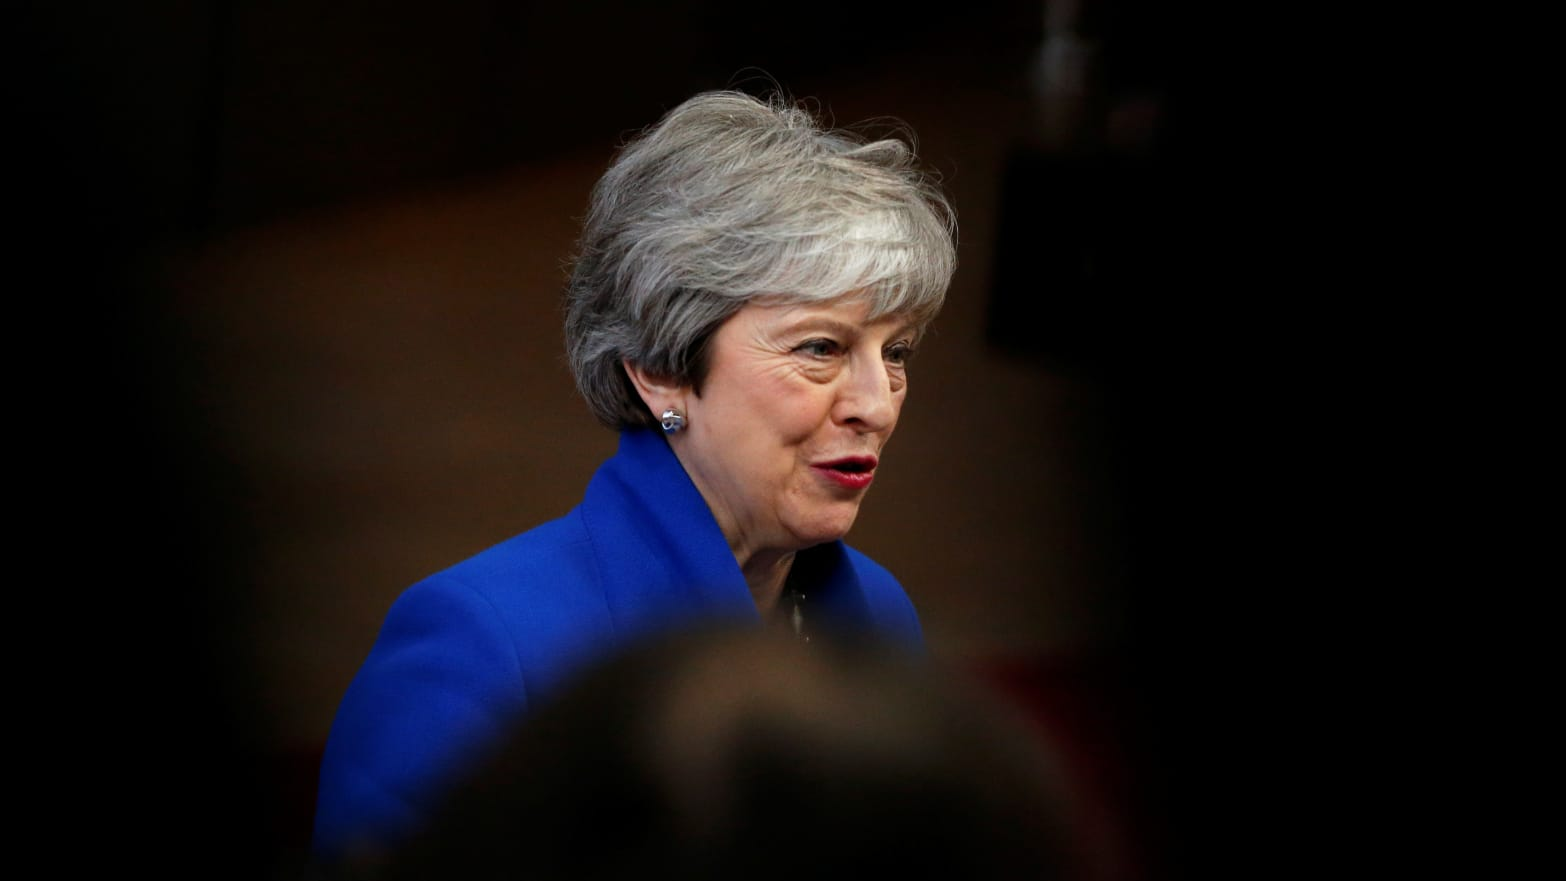 Theresa May Has Finally Been Forced Out: 'She Fucked Up Then Fucked Off'